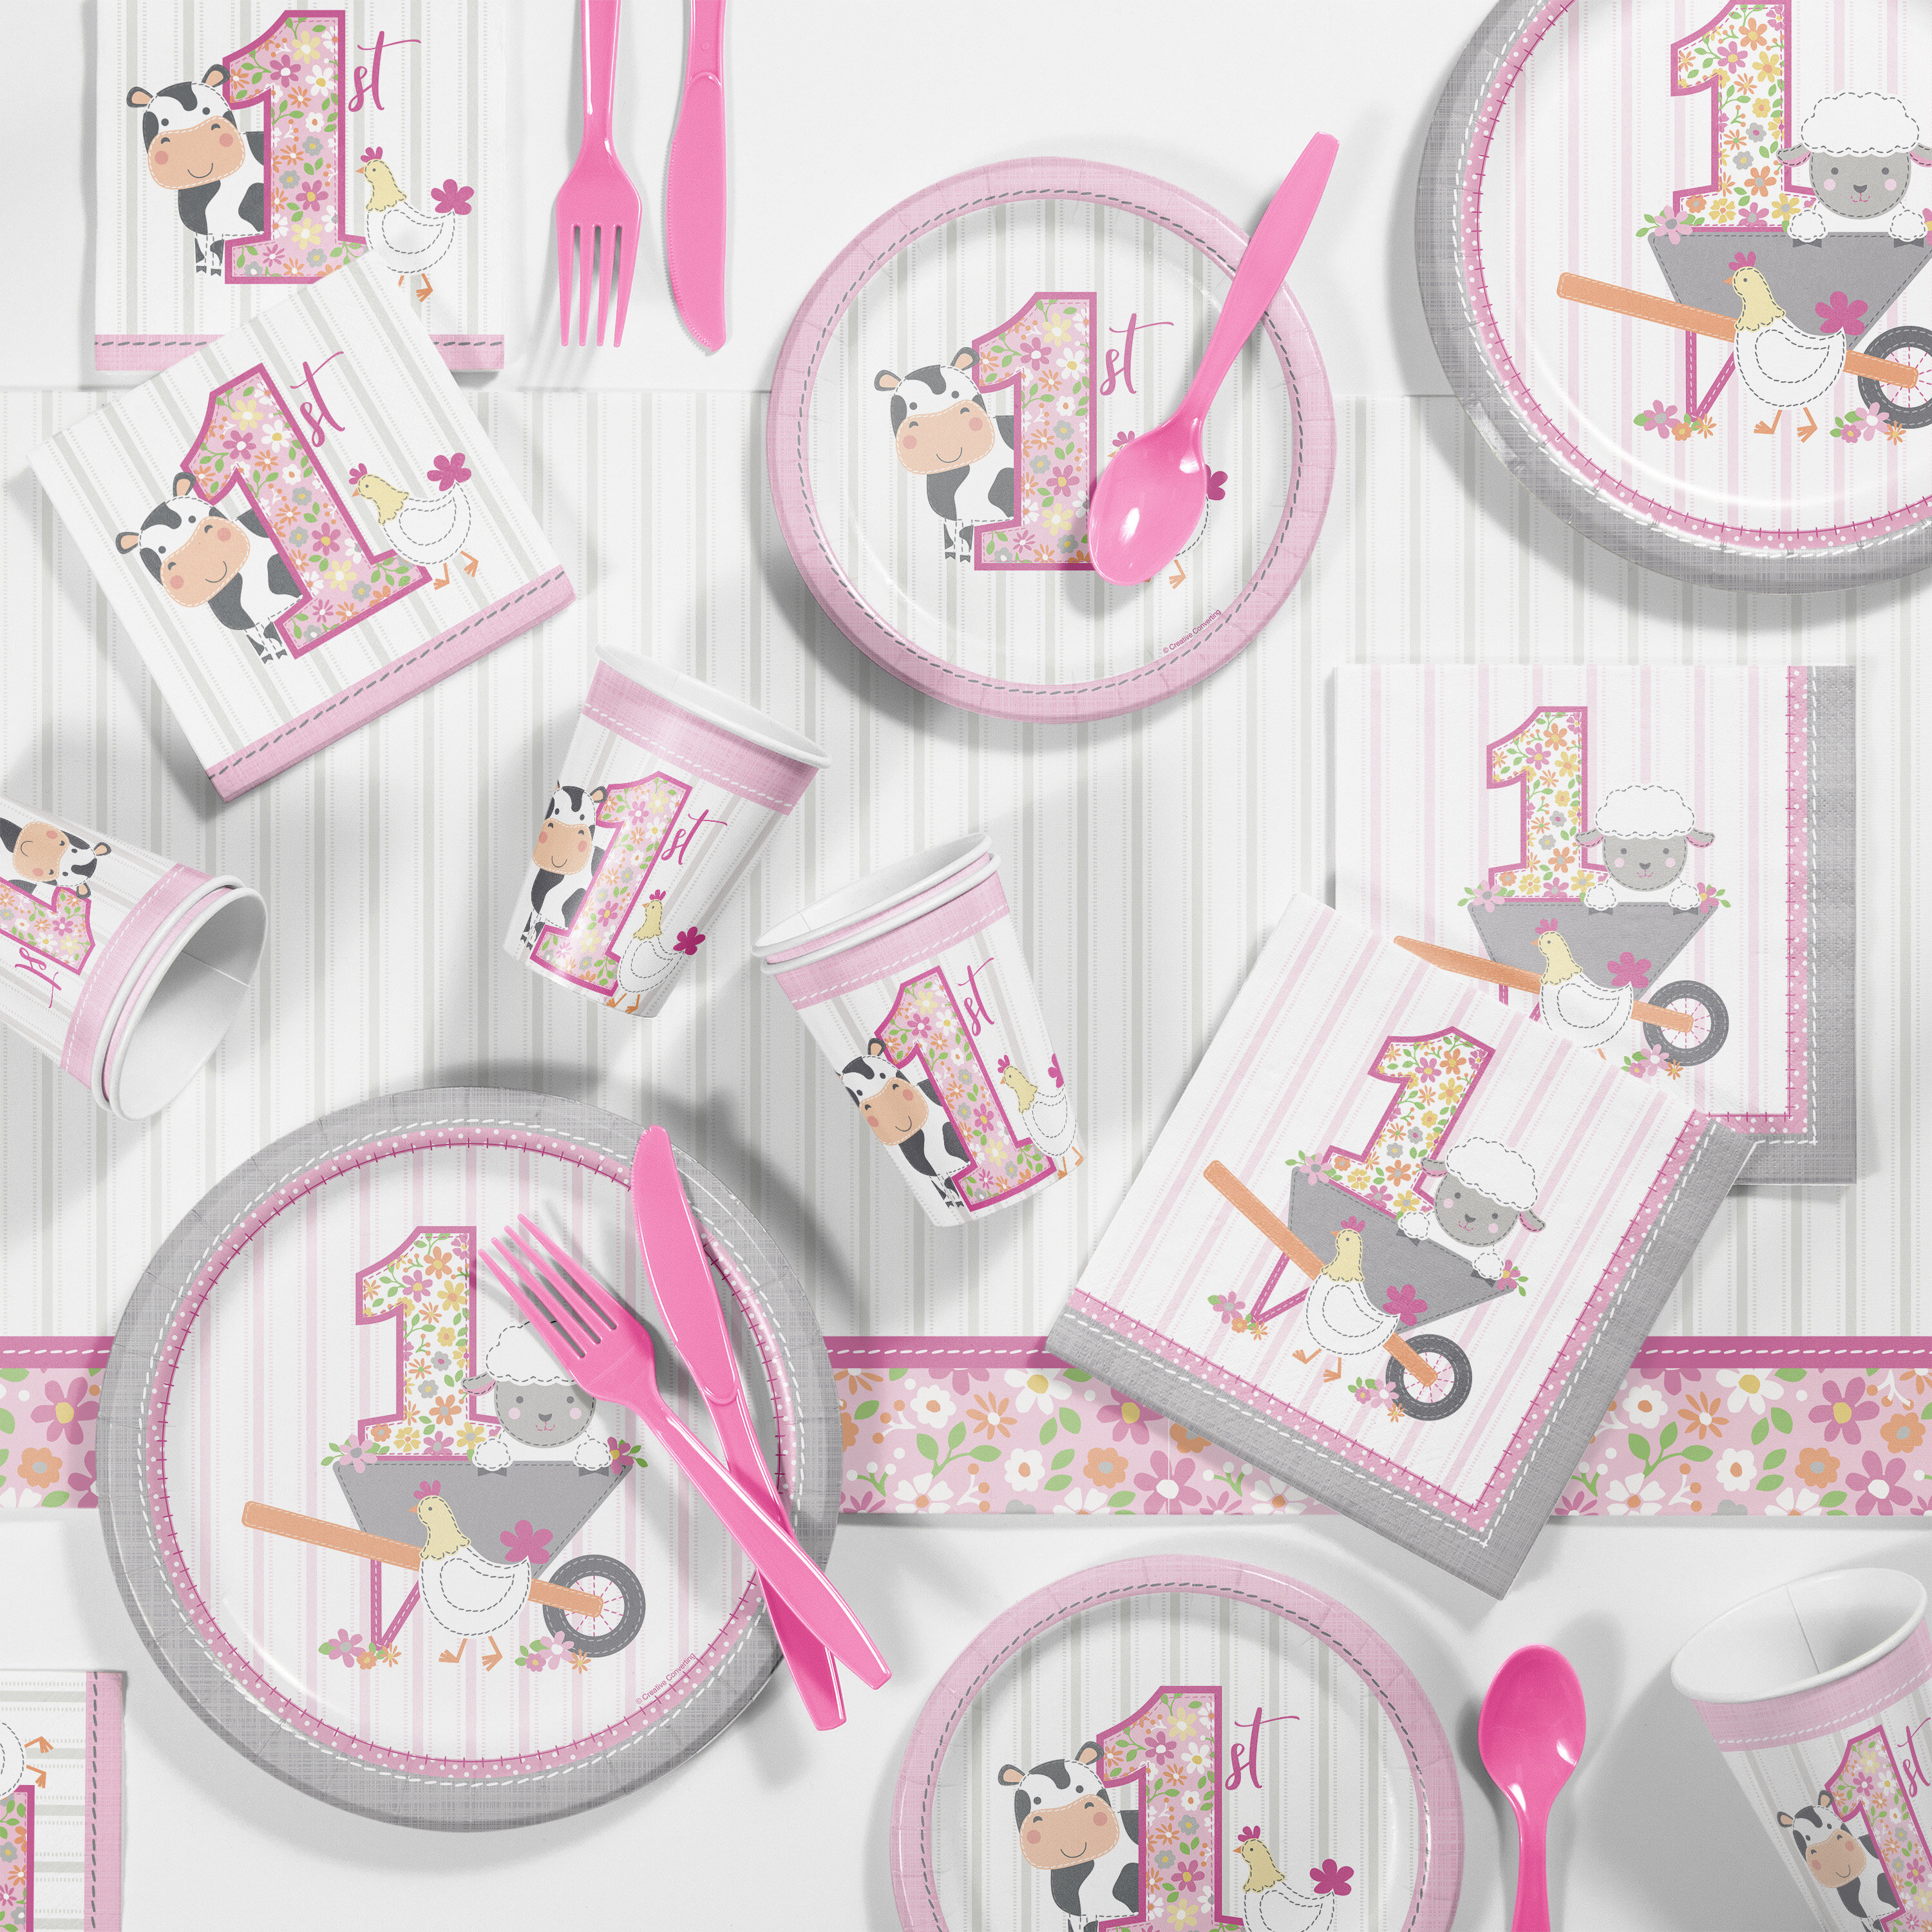 1st Birthday Themes Girl.Farmhouse Girl 1st Birthday Party Paper Plastic Disposable Supplies Kit